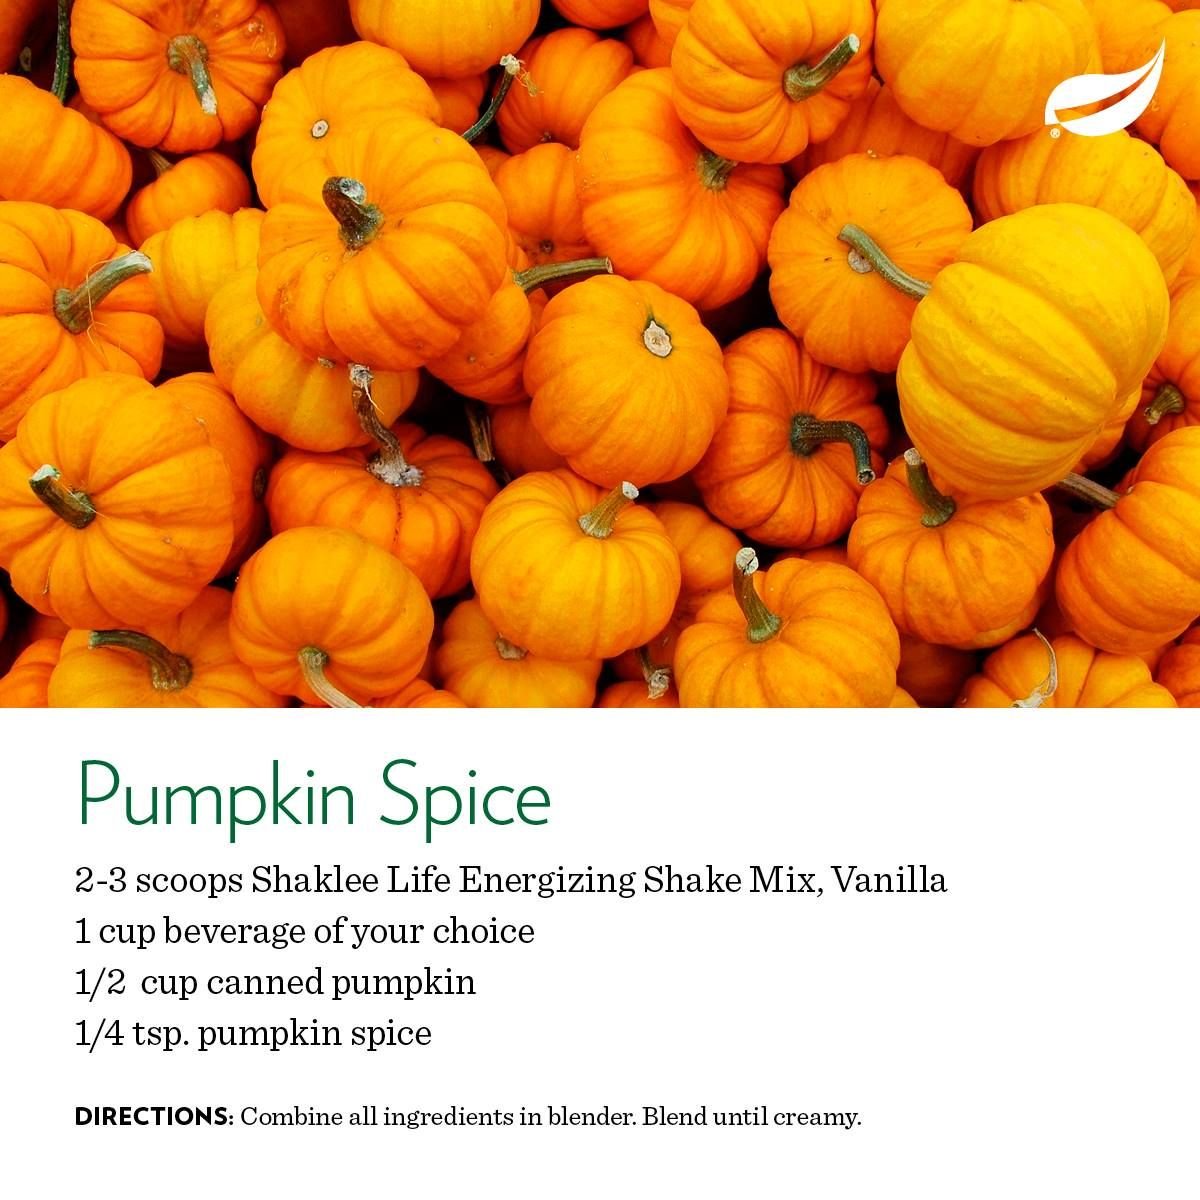 Love pumpkin pie? Try this Pumpkin Spice Shaklee Life Shake recipe. Get Life Shake: https://barefoot.myshaklee.com/us/en/shop/healthyfoundations/protein/product-_p_shaklee-life-energizing-shakep